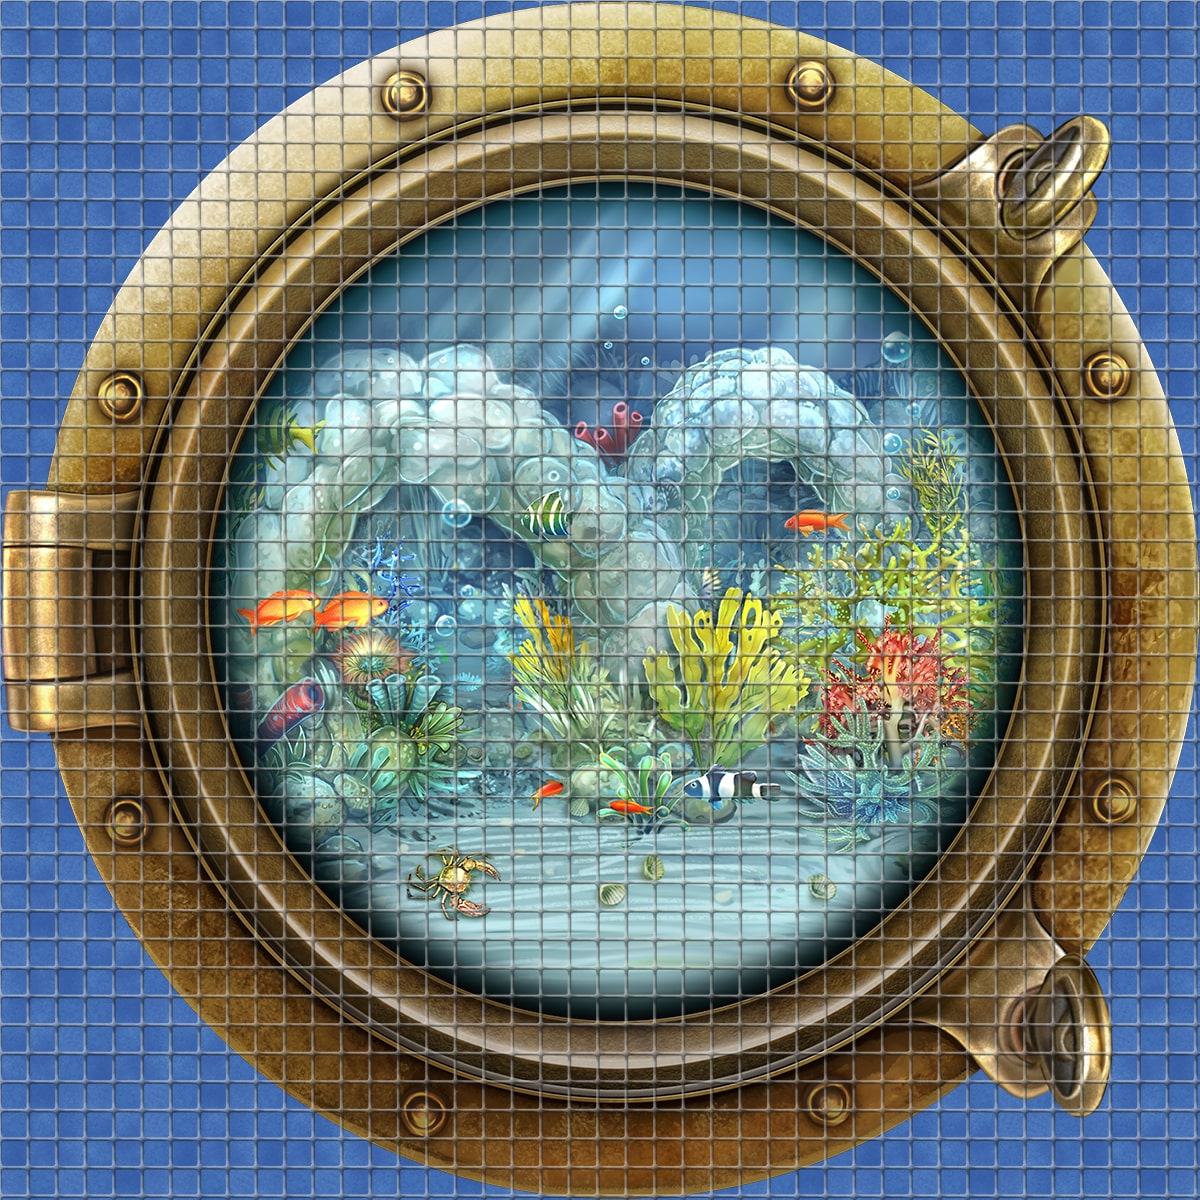 Sea-View-Digital-Print-Mosaic-Ezarri.jpg